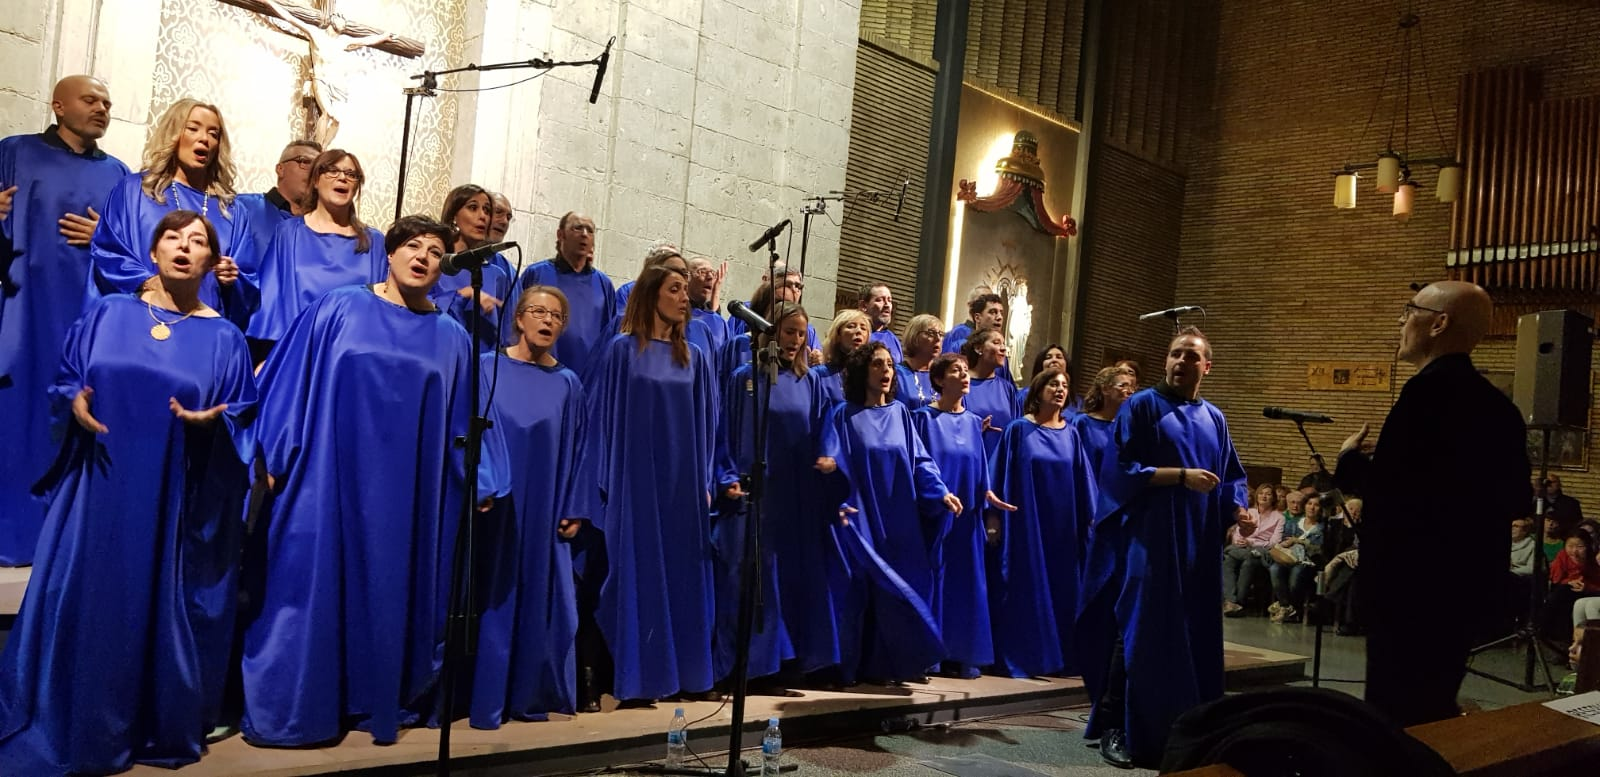 CONCIERTO SOLIDARIO A CARGO DEL CORO DE GOSPEL GOOD NEWS